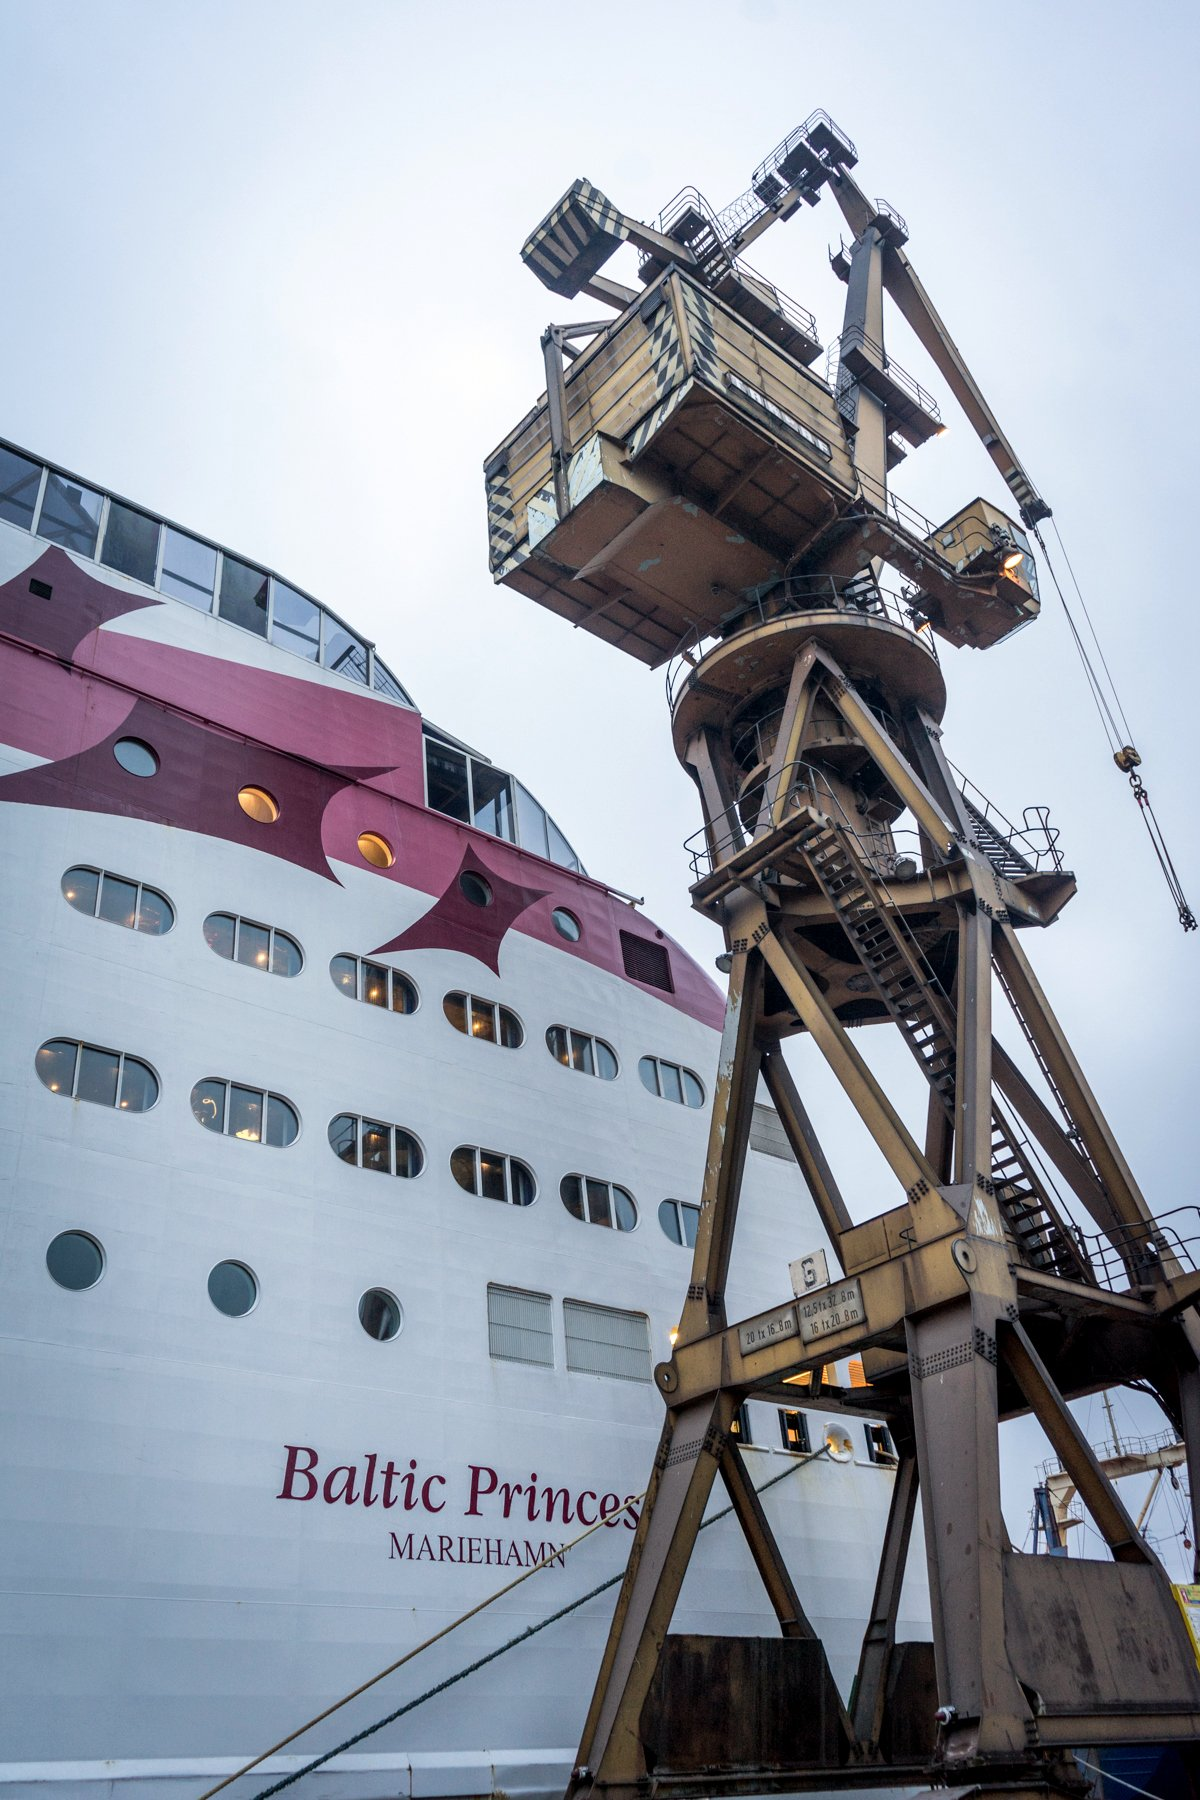 Baltic Princess